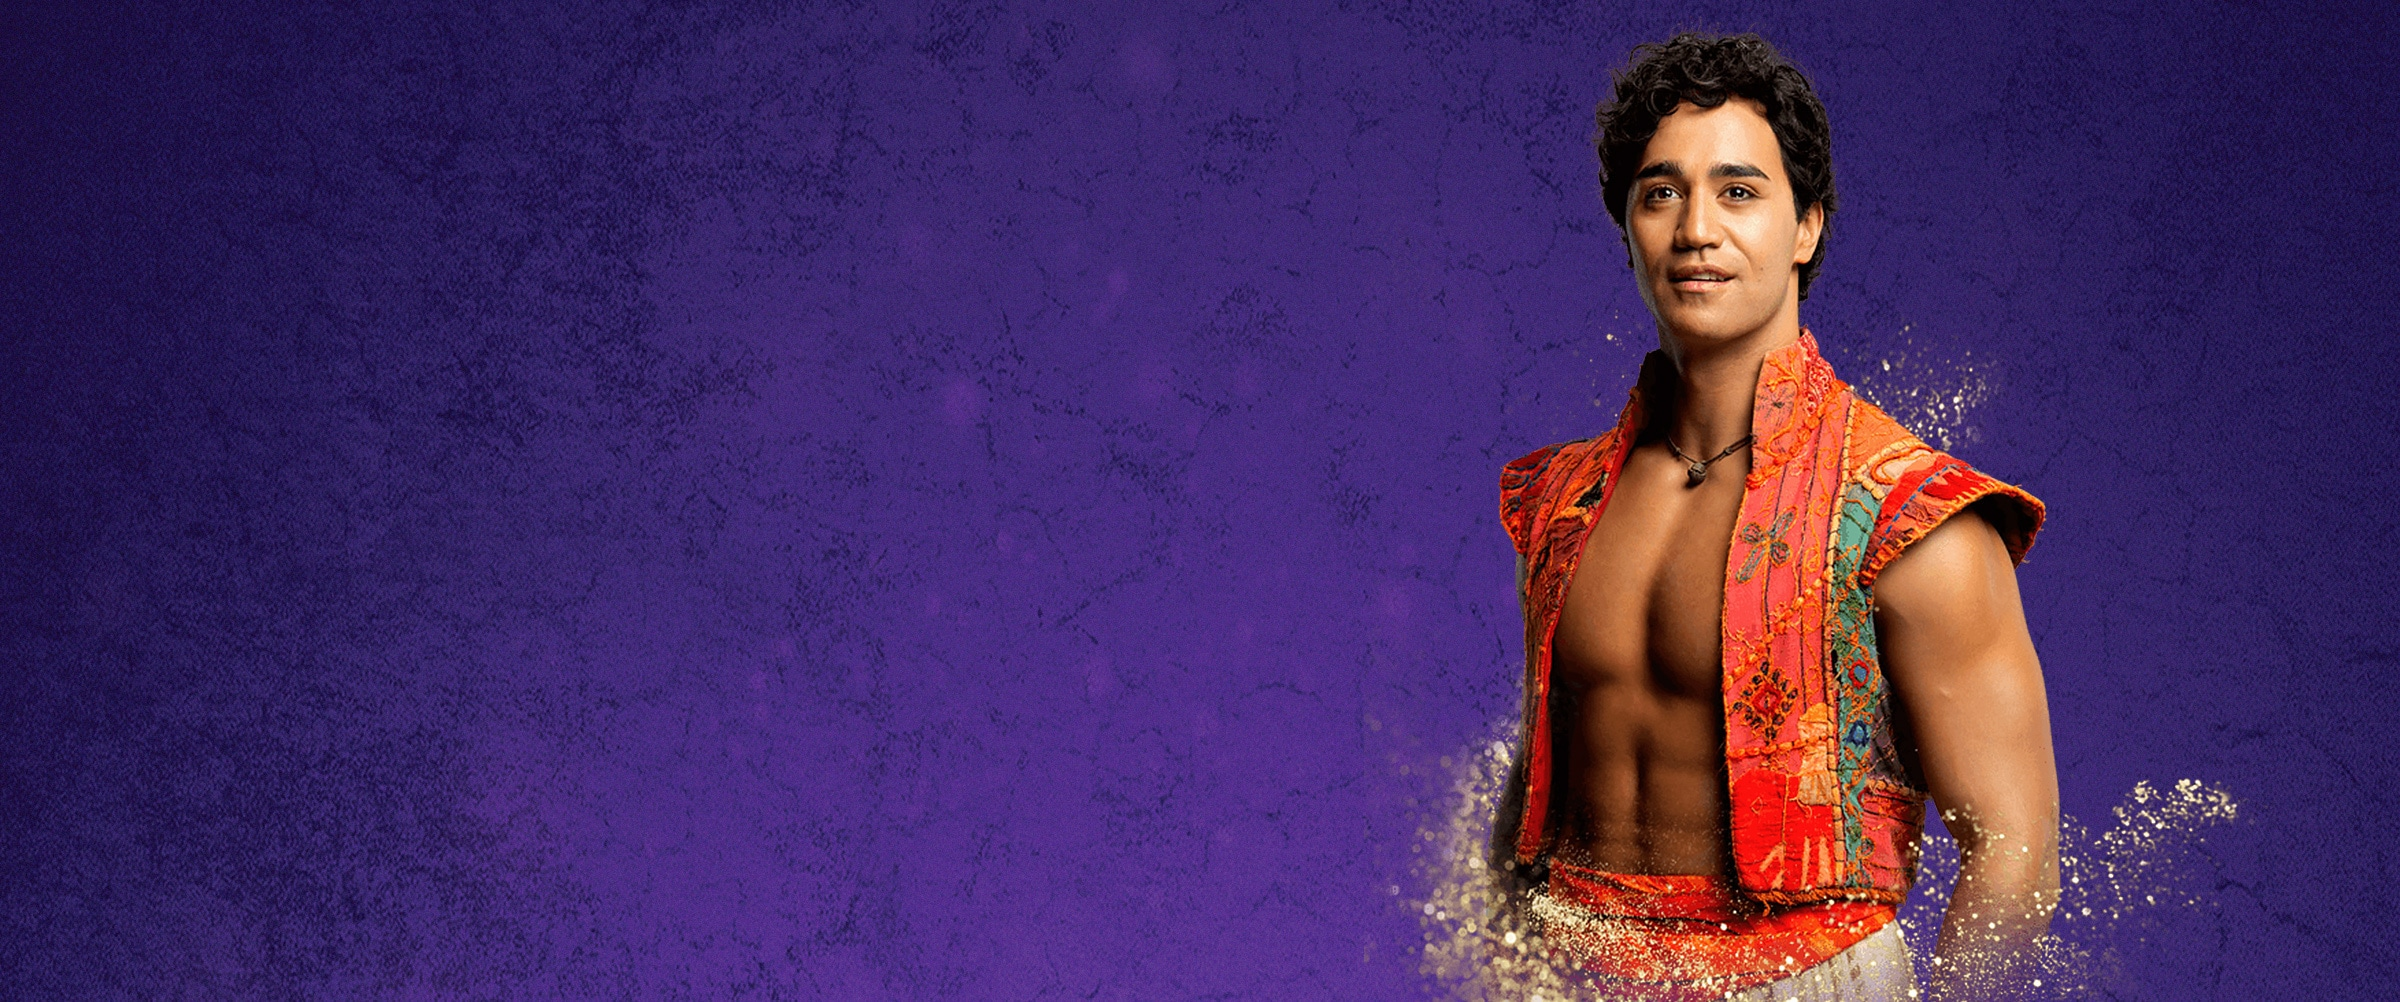 Live Shows AU - Aladdin Musical - New Aladdin Hero